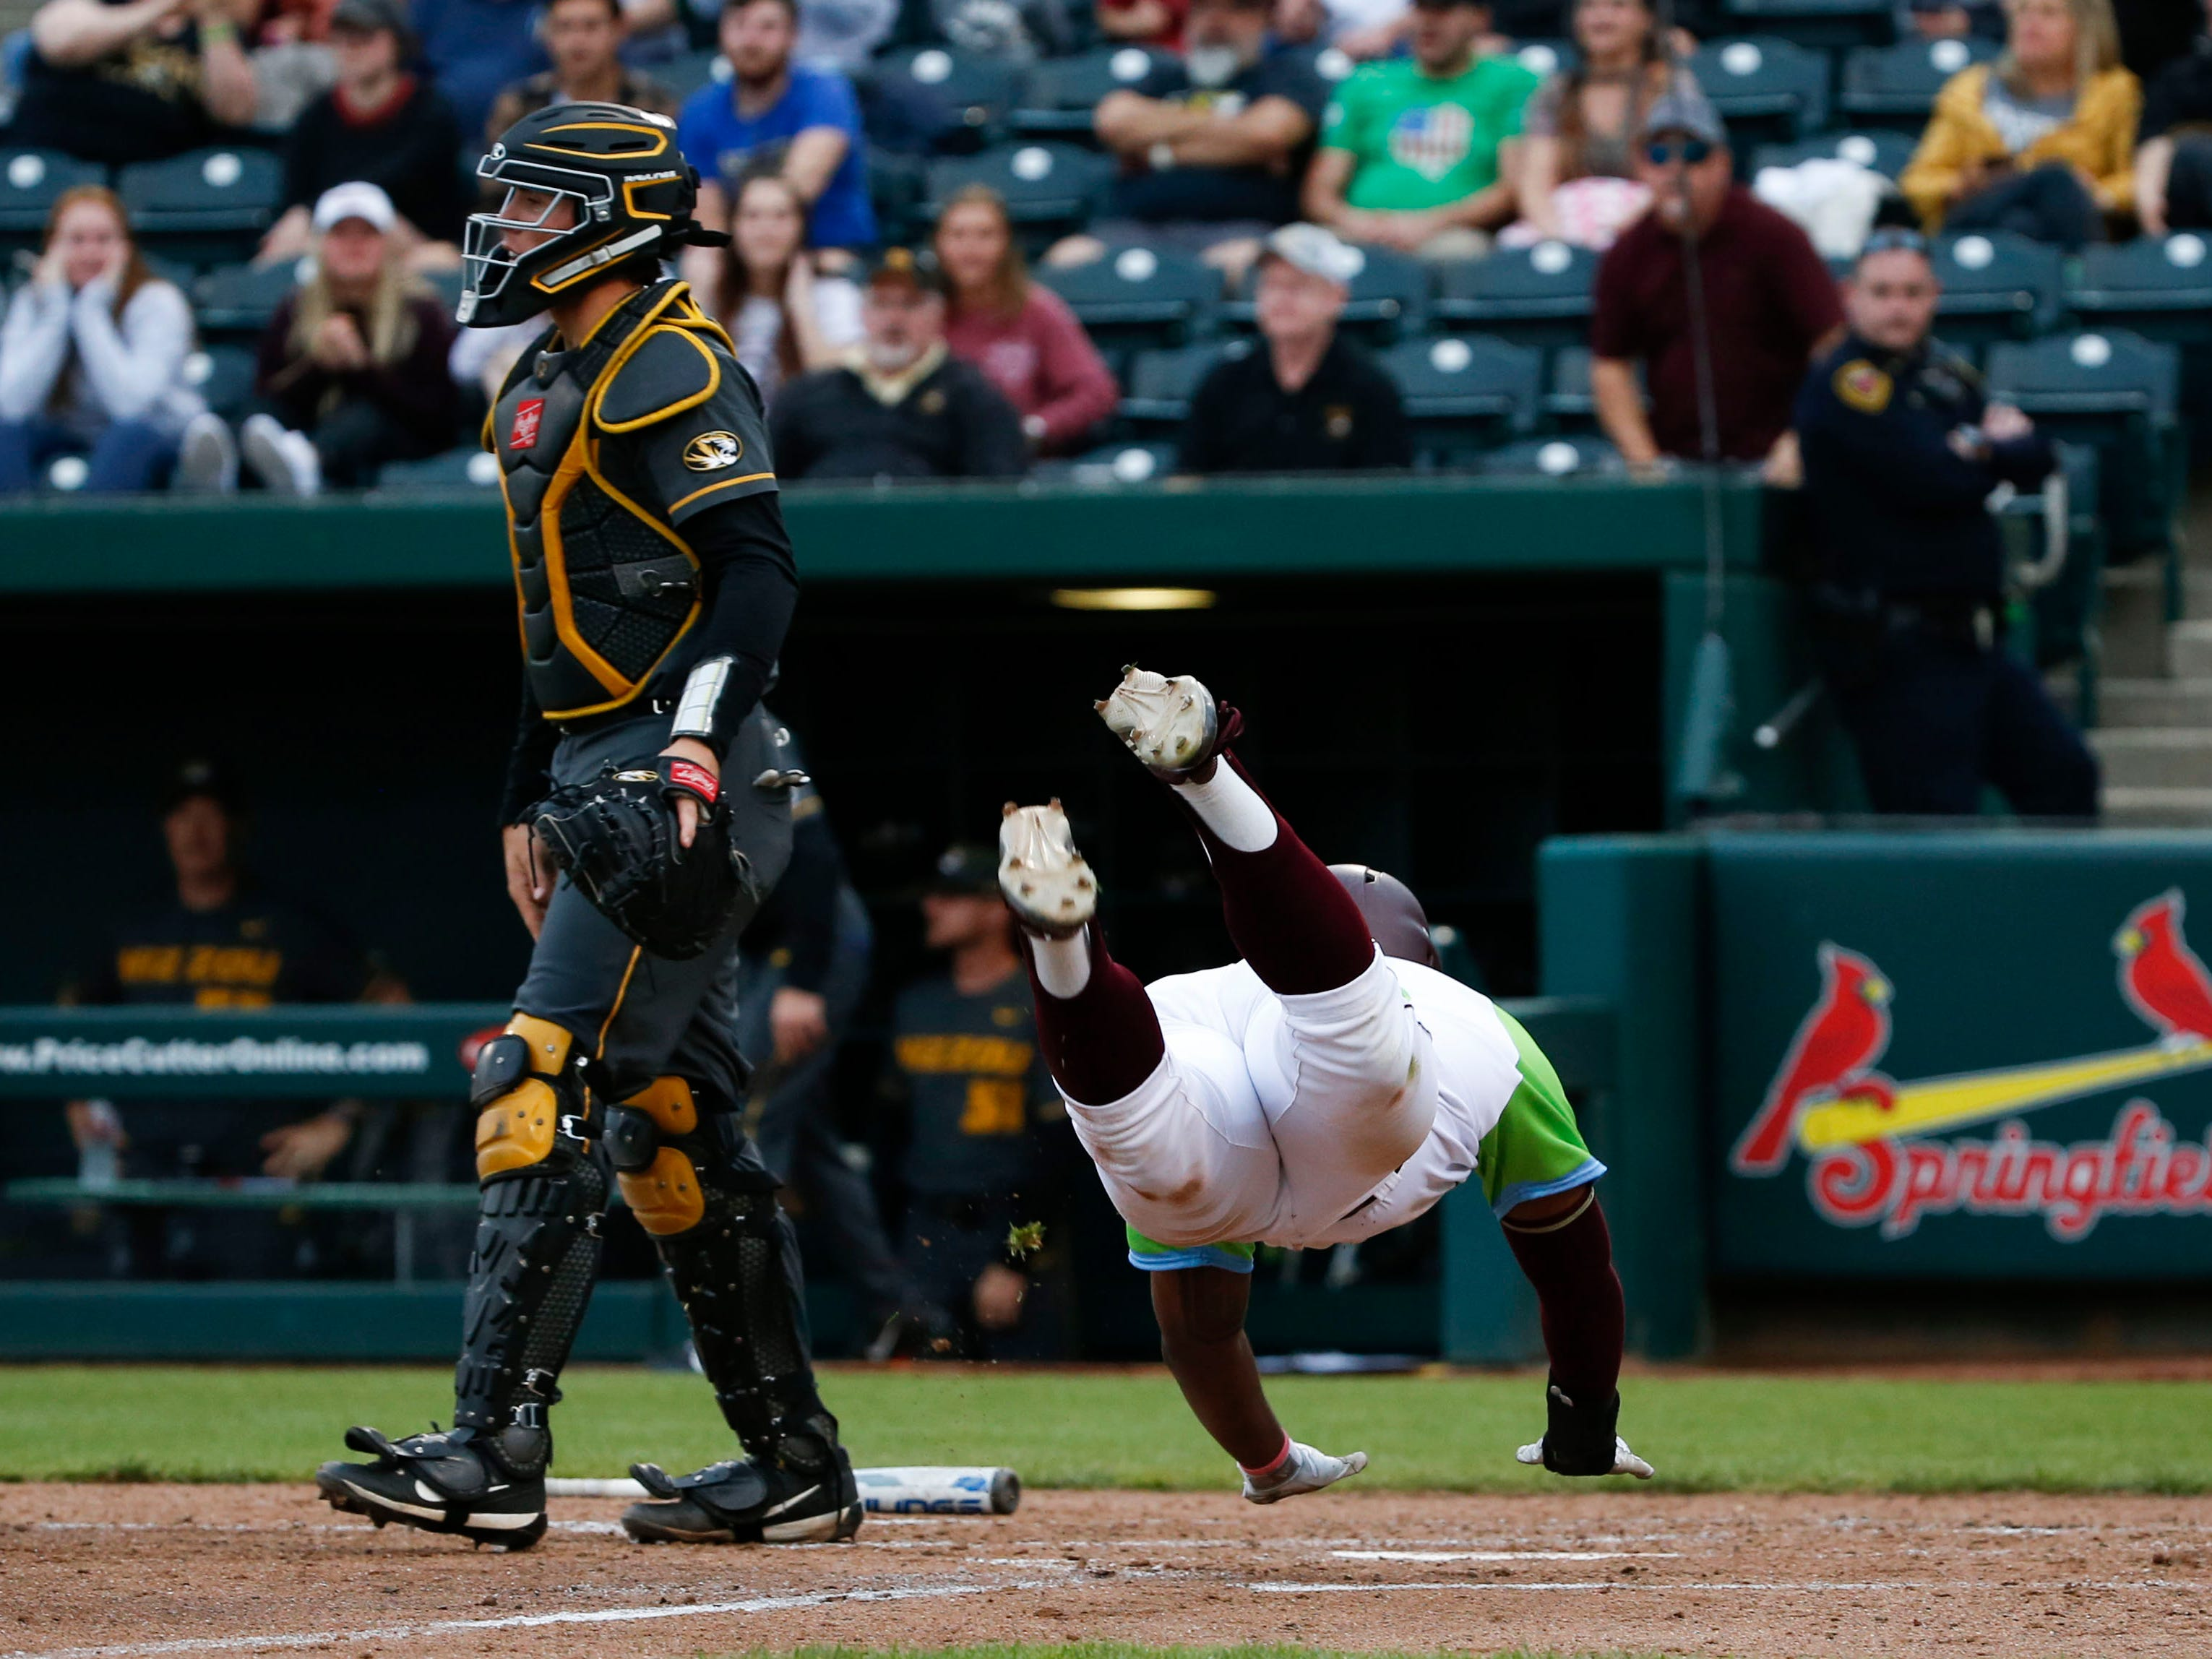 The Missouri State Bears take on the Mizzou Tigers at Hammons Field on Tuesday, April 16, 2019.